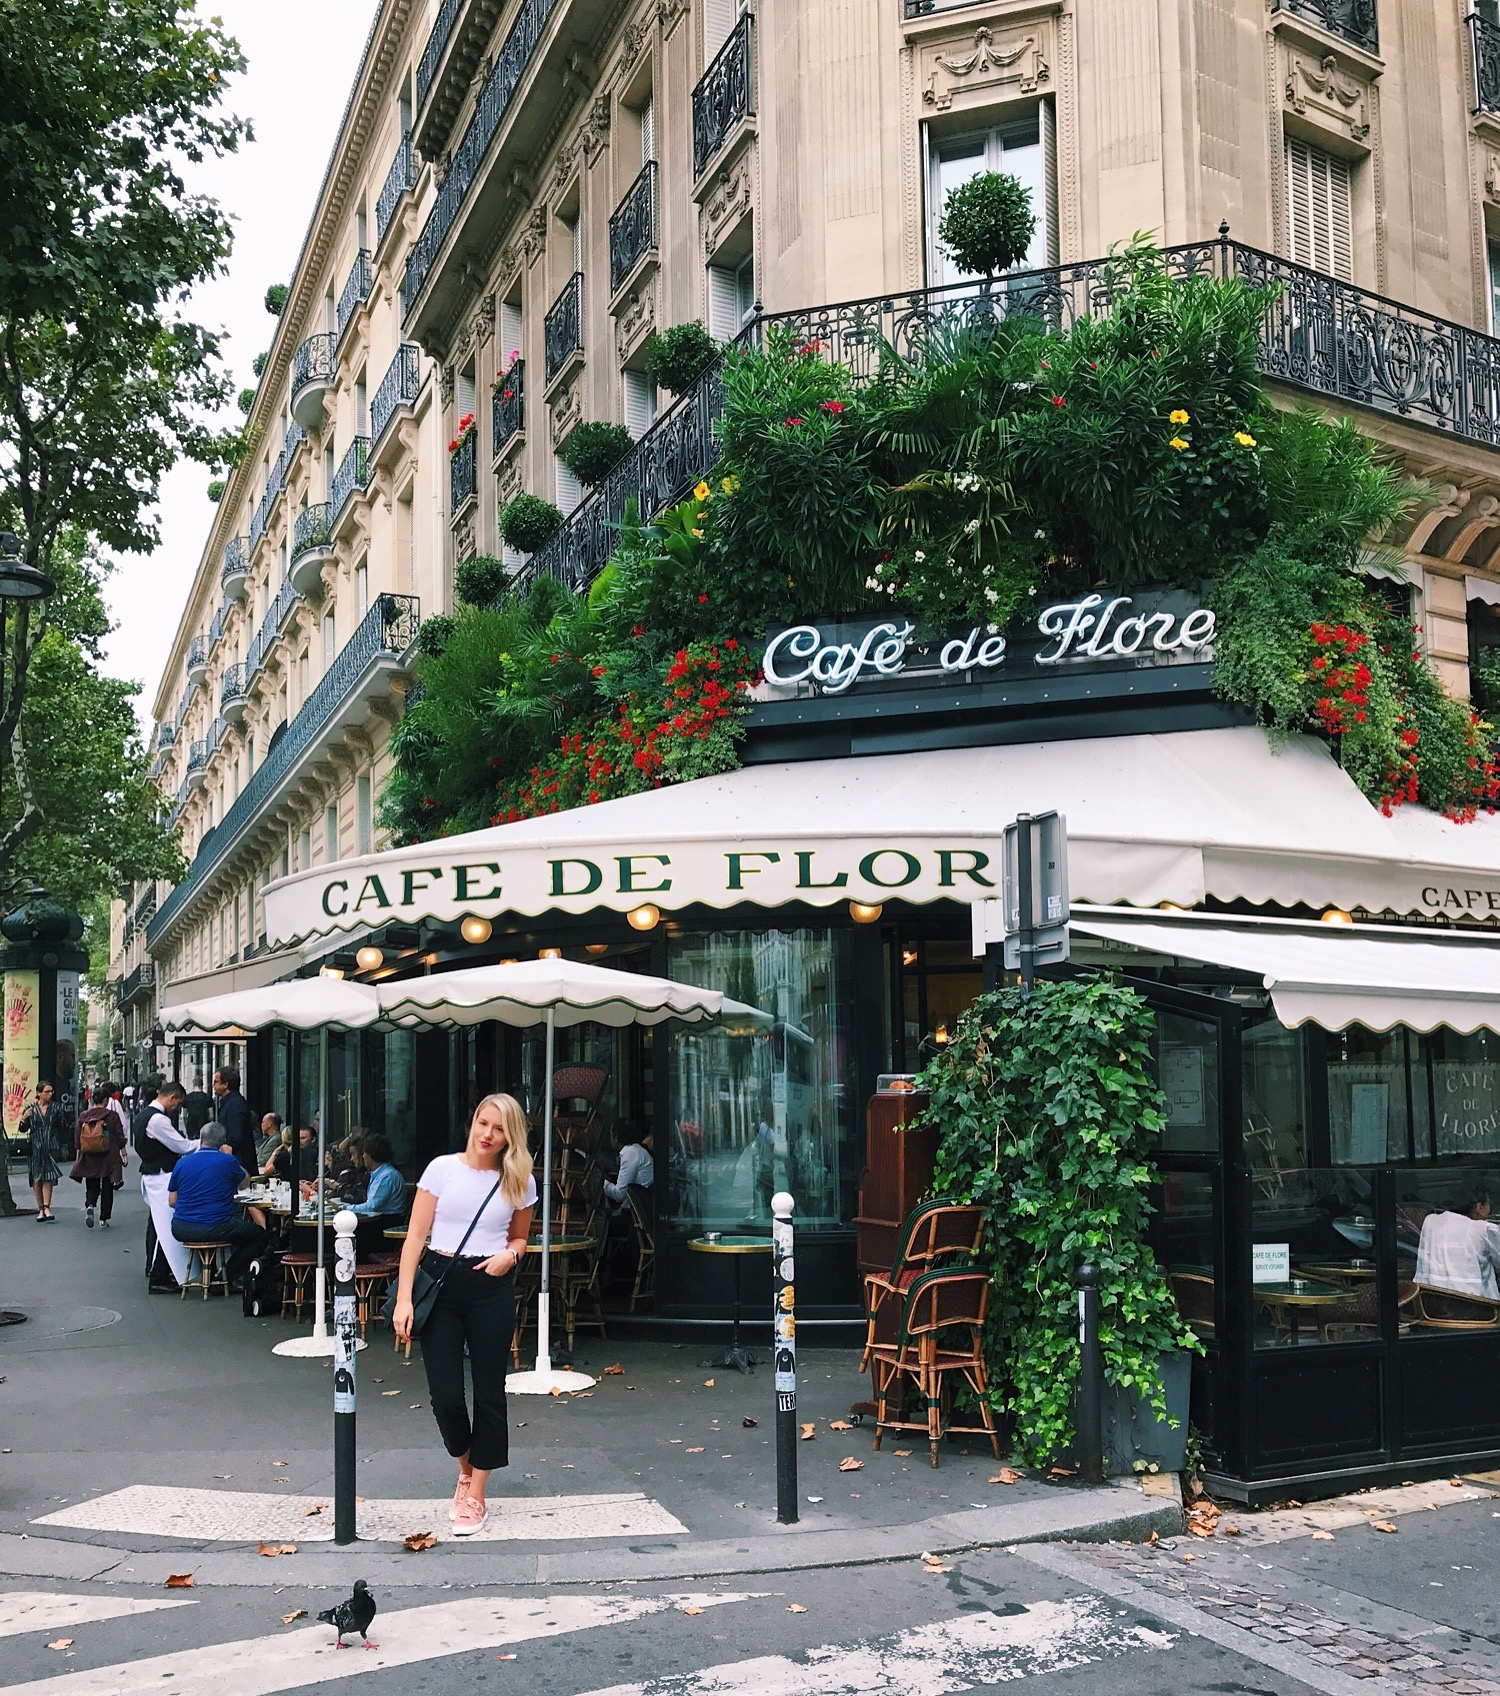 Straight off the plane to Cafe De Flore for coffee & croissants